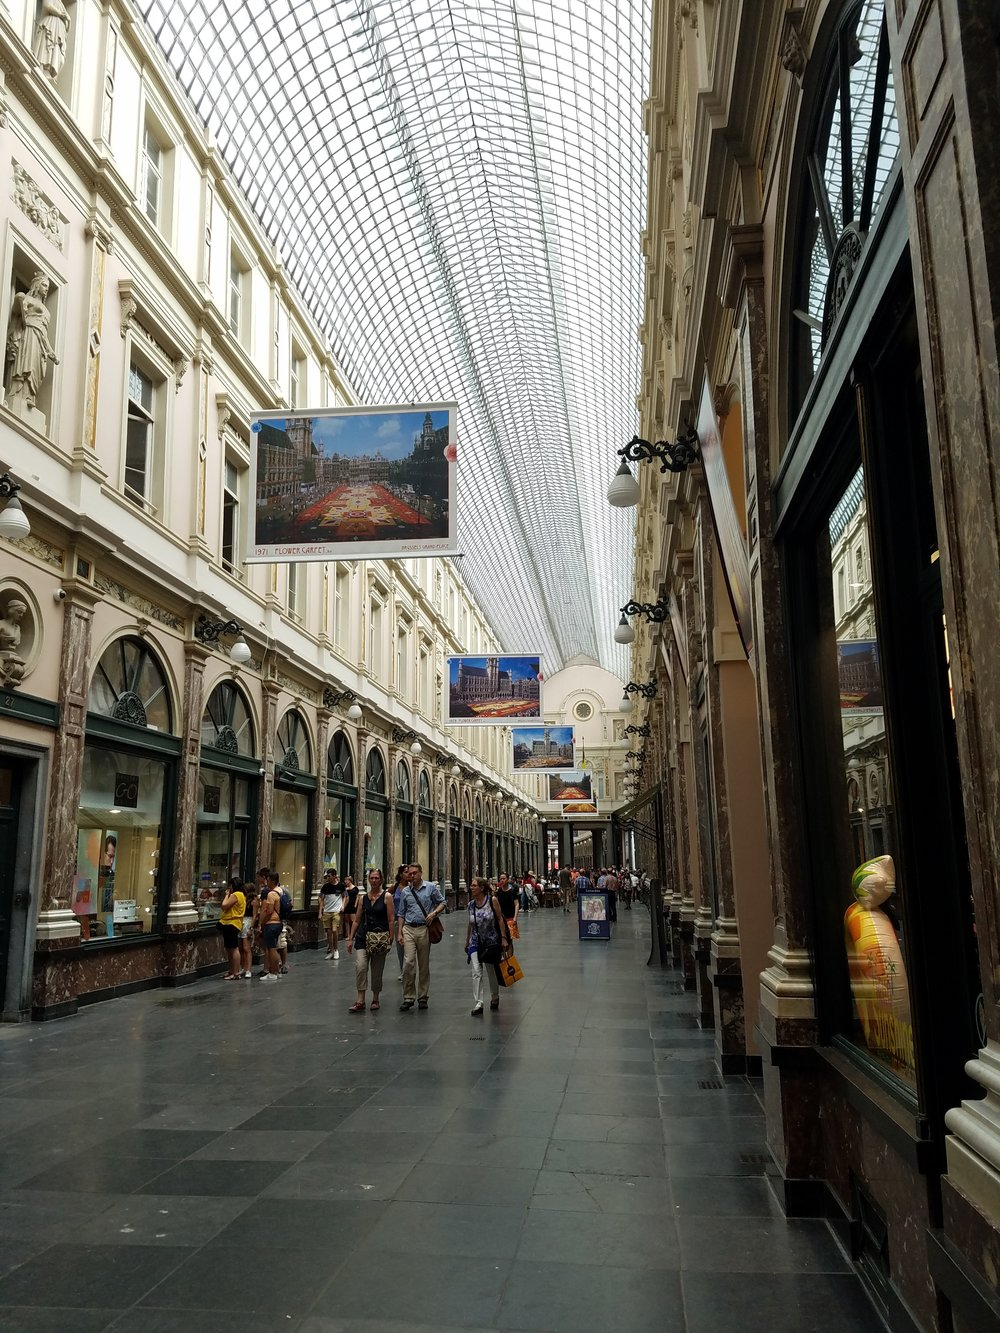 Les Galeries Royales Sint-Hubert is one of the oldest covered shopping arcades in all of Europe!